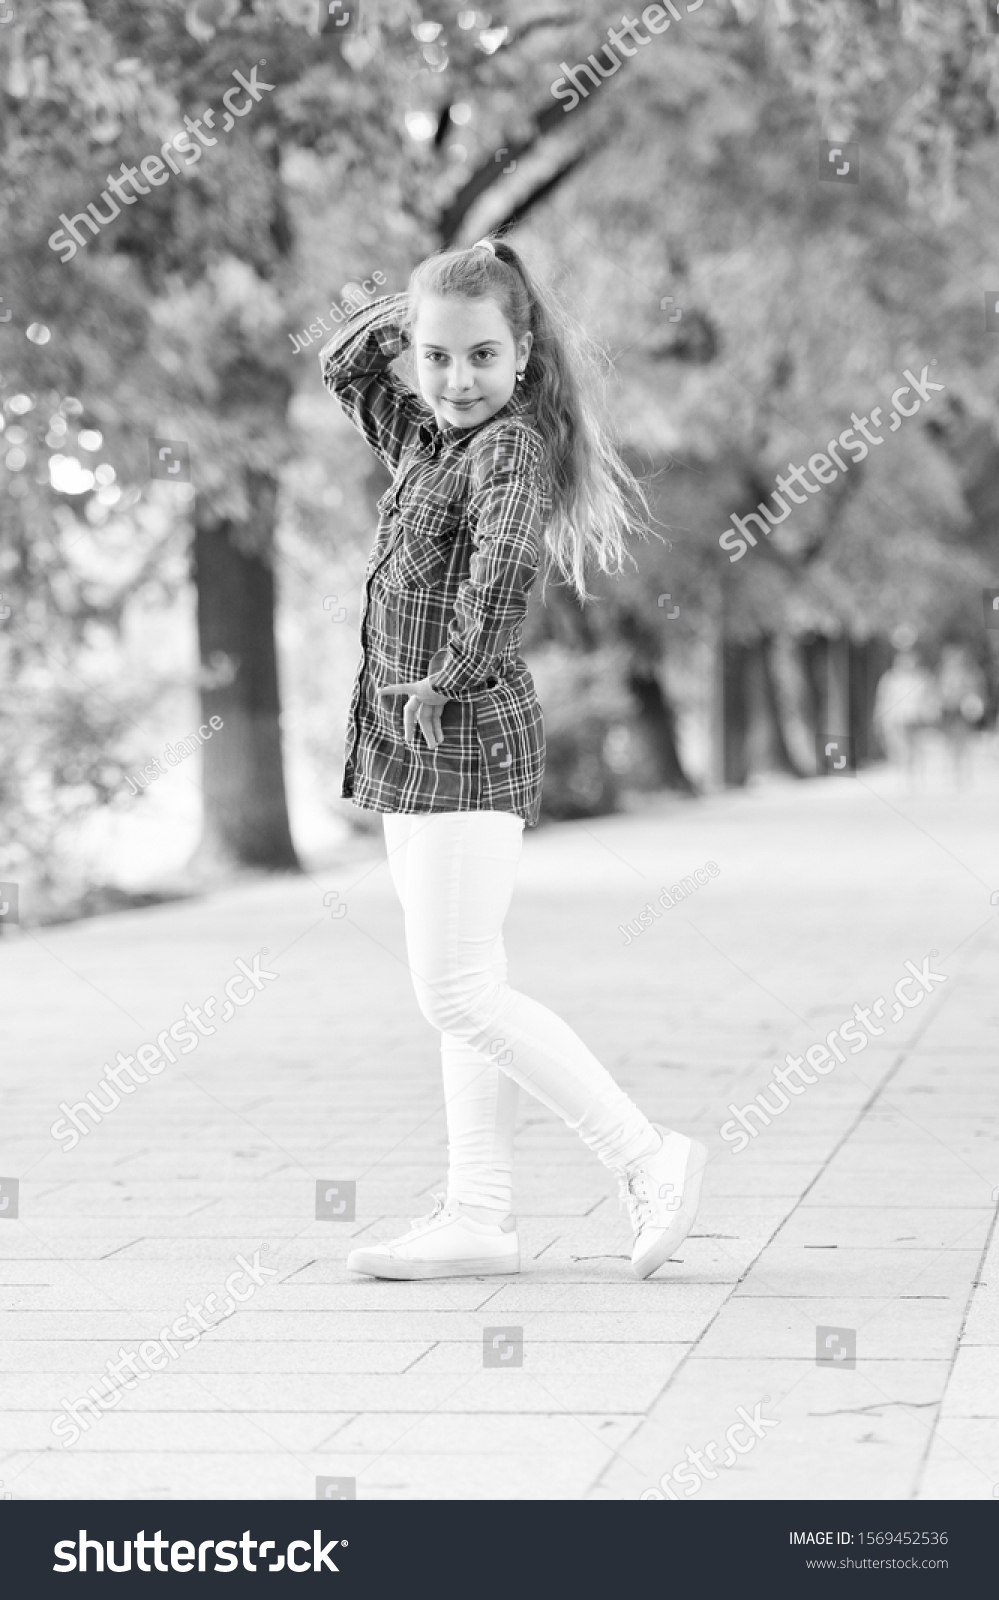 Hairstyles to wear on windy days. Windproof hairstyles. Girl little cute child enjoy walk on windy day nature background. Feeling cozy and comfortable on windy day. Deal with long hair on windy day. #1569452536